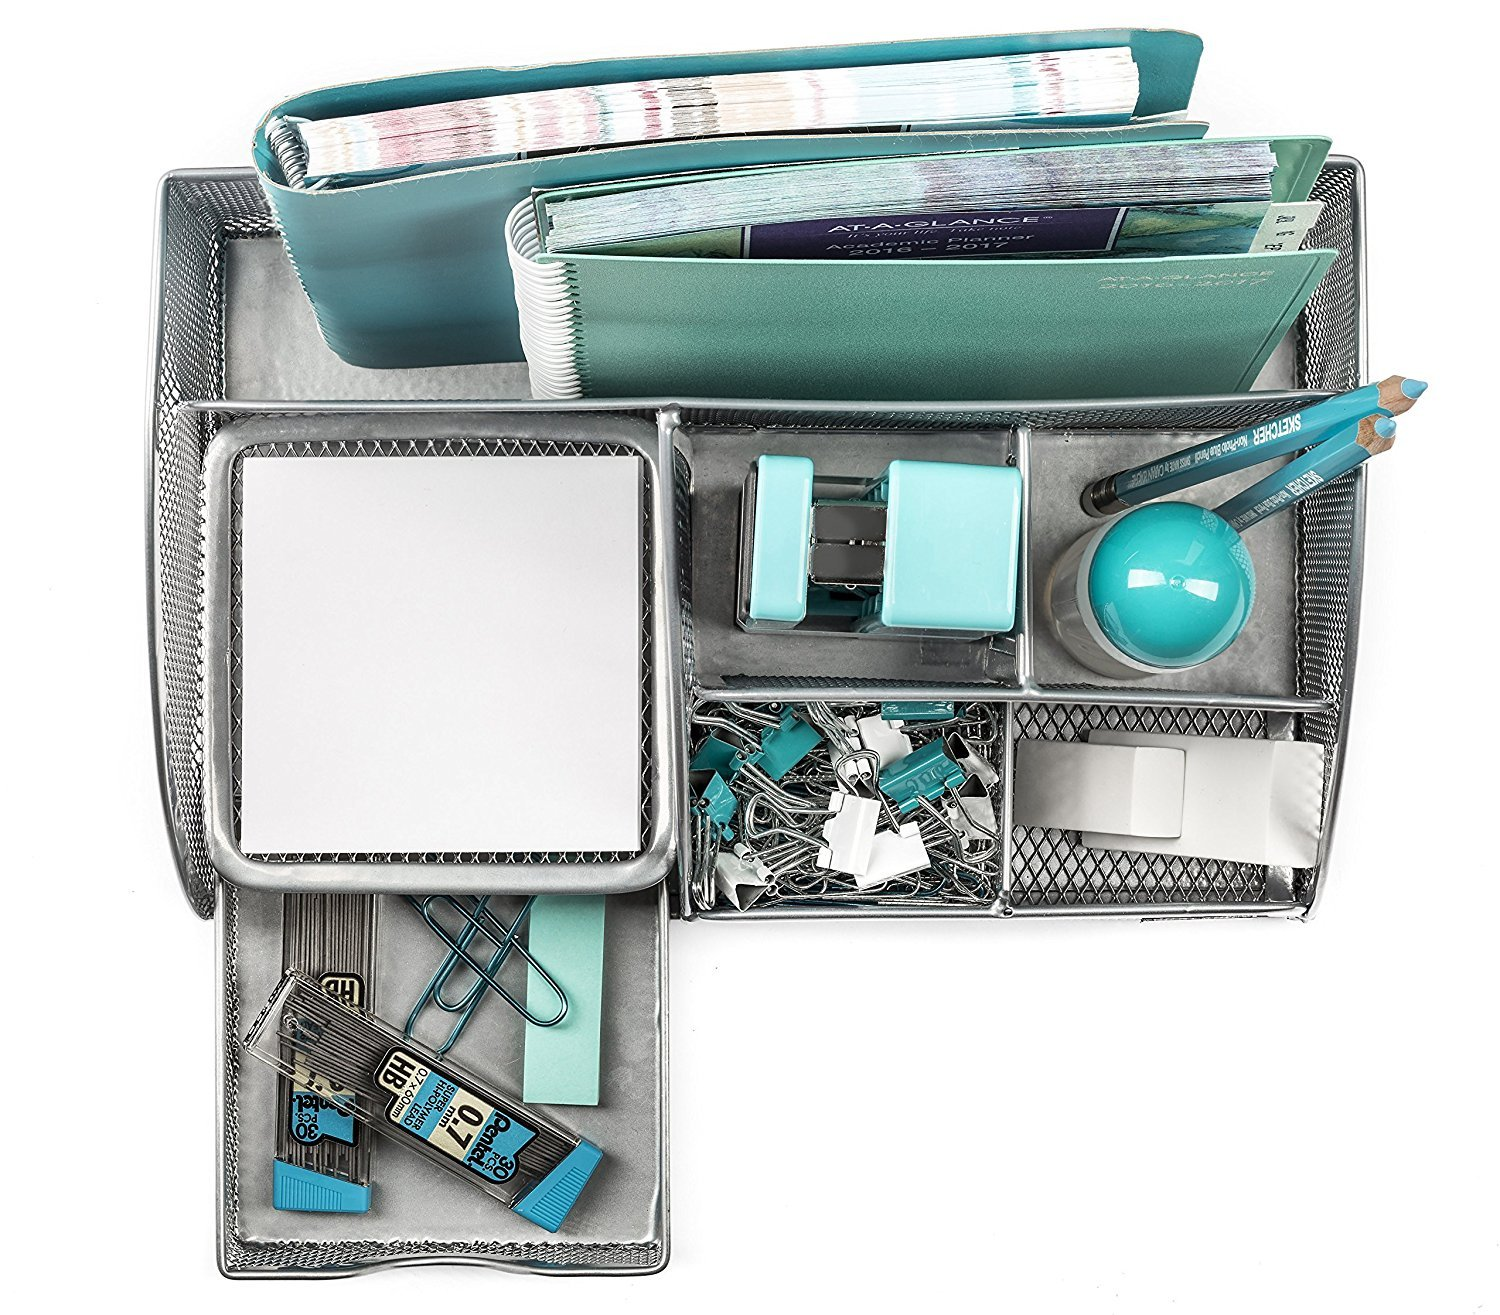 WIDENY Mesh Office desk Organizer with 6 compartments +drawer + pen/pencil holder